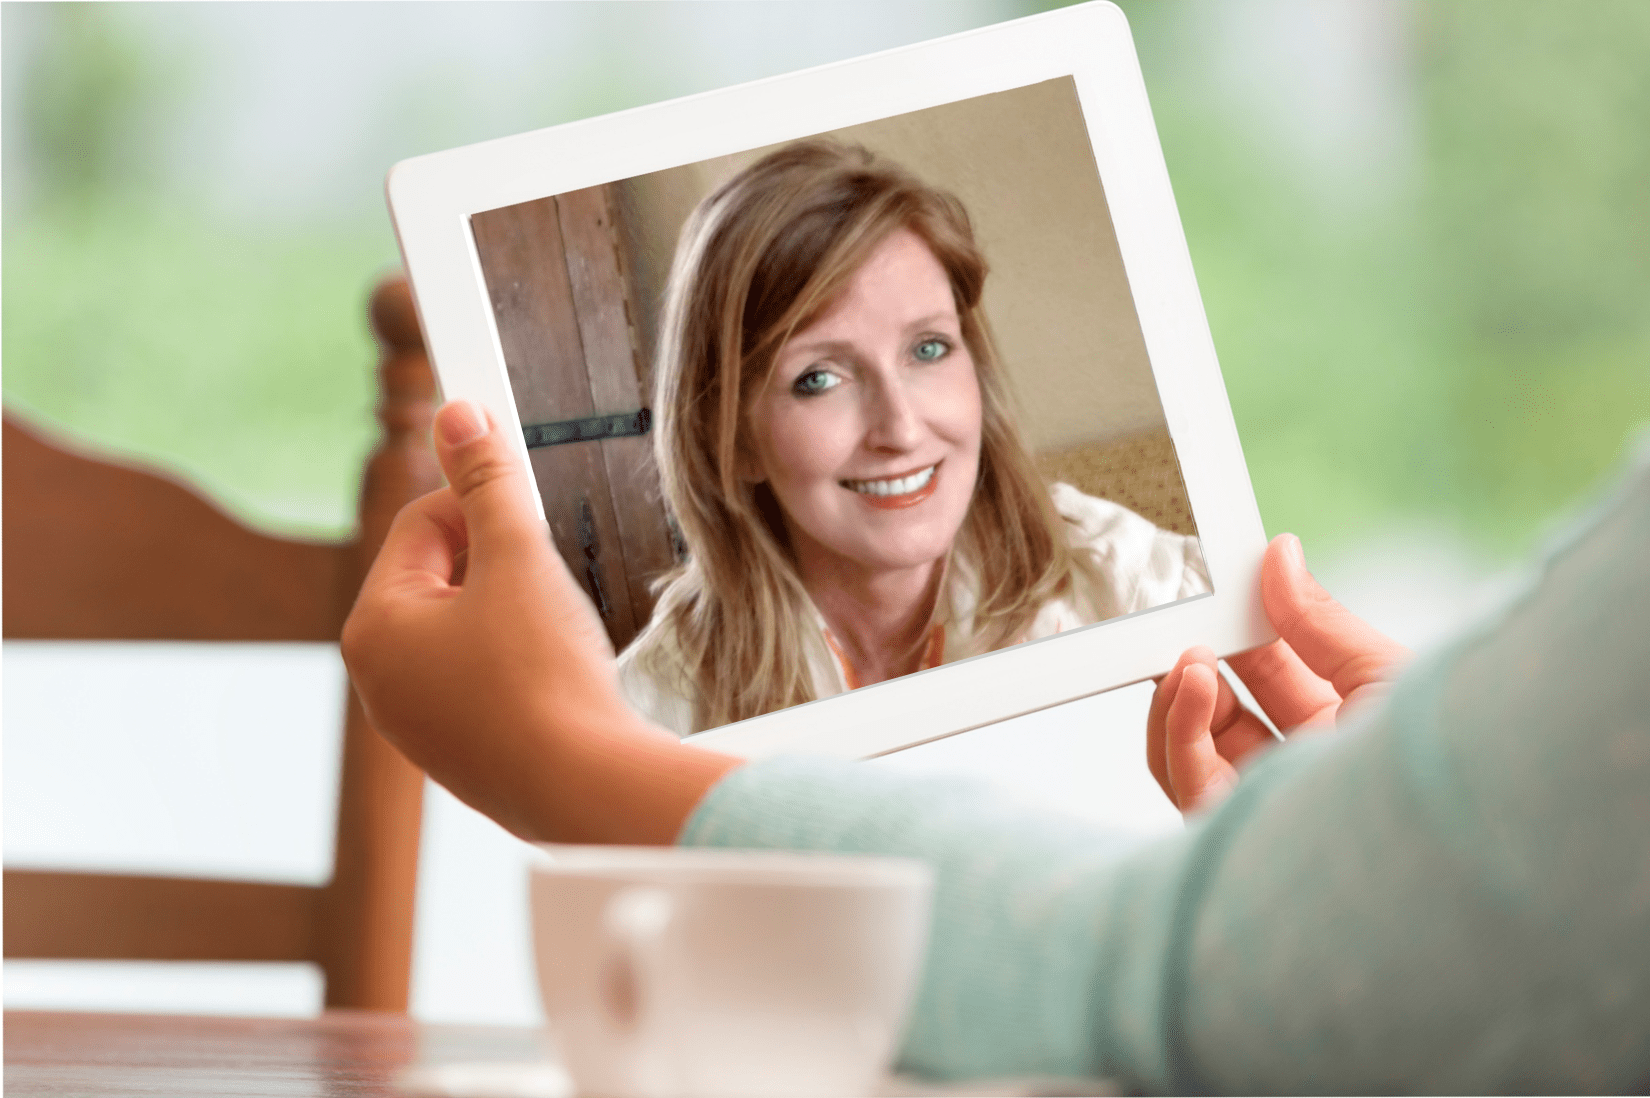 Home Organization Video Chats